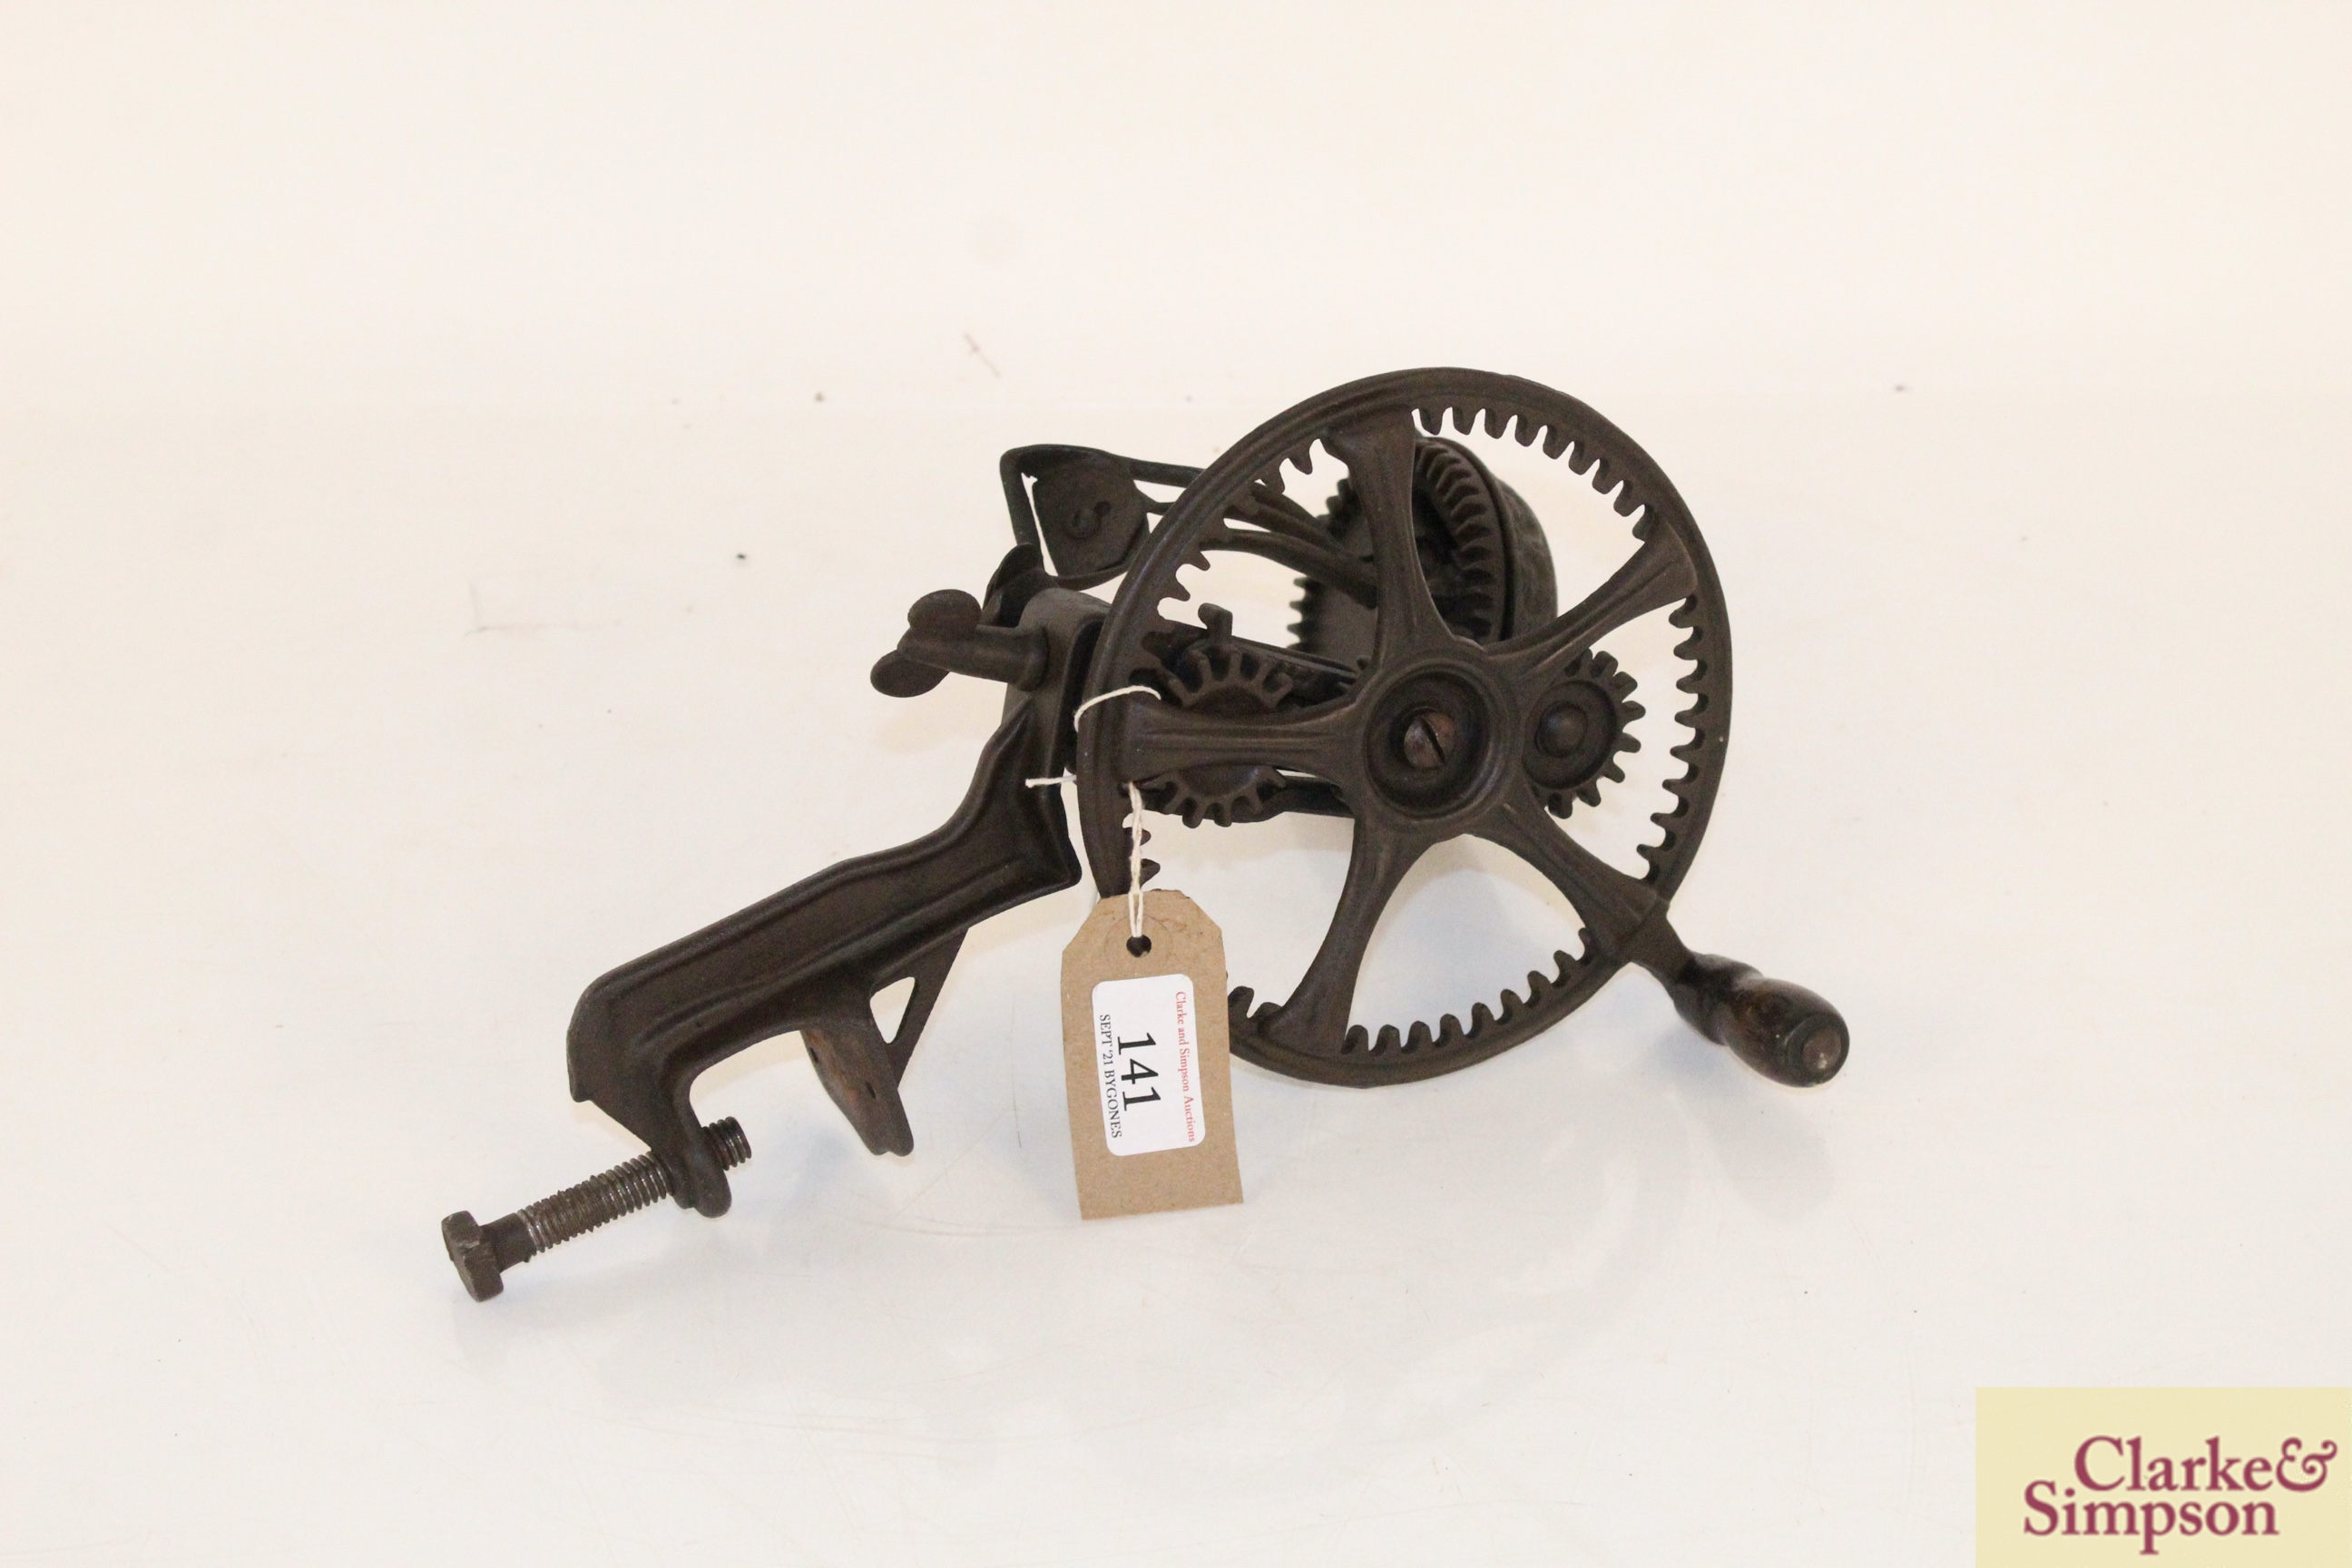 A cast iron apple peeler by The Reading Hardware C